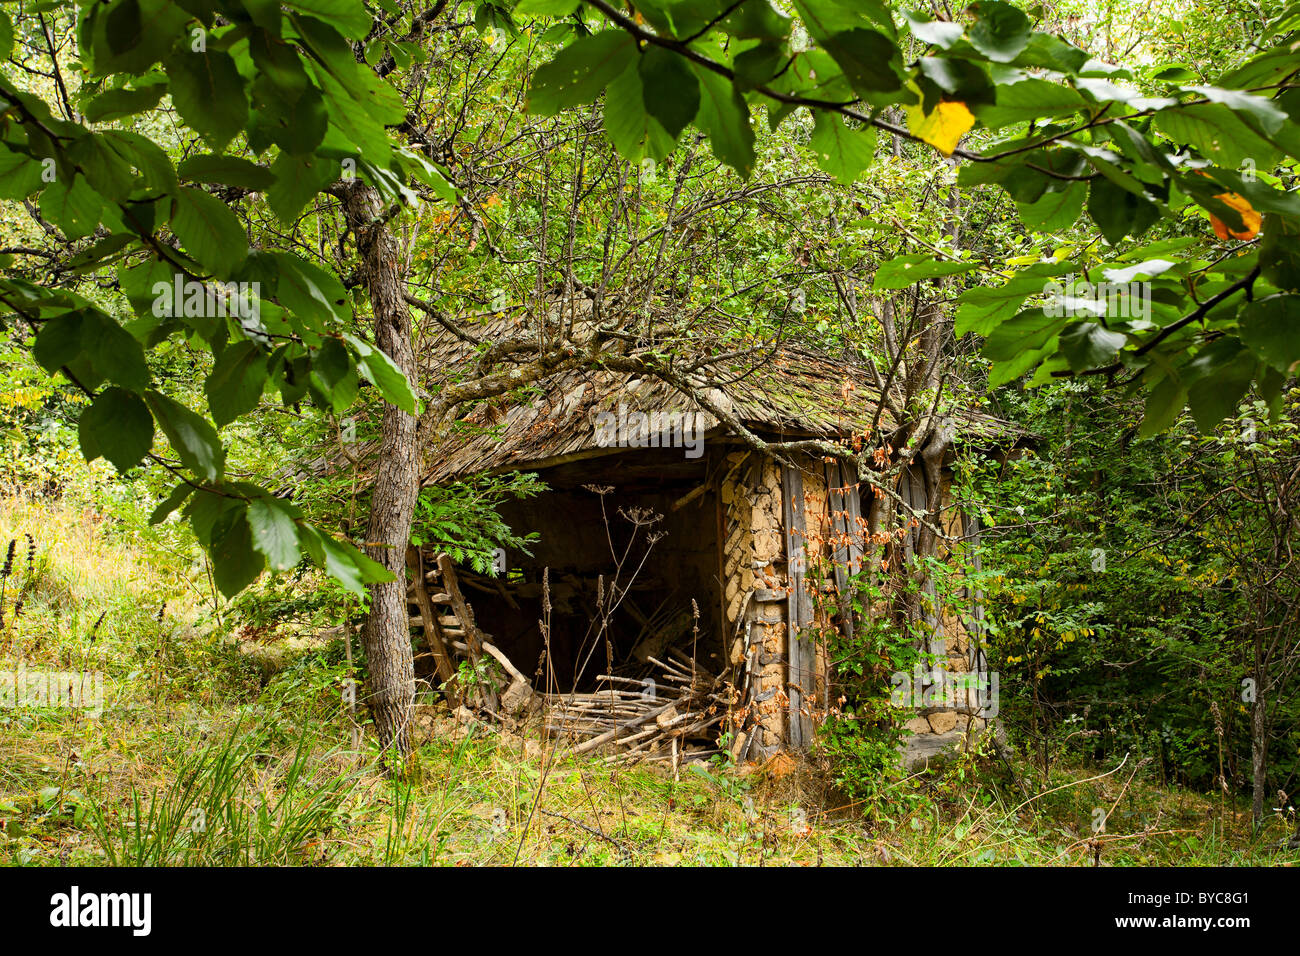 Old abandoned ruined barn in the forest - Stock Image